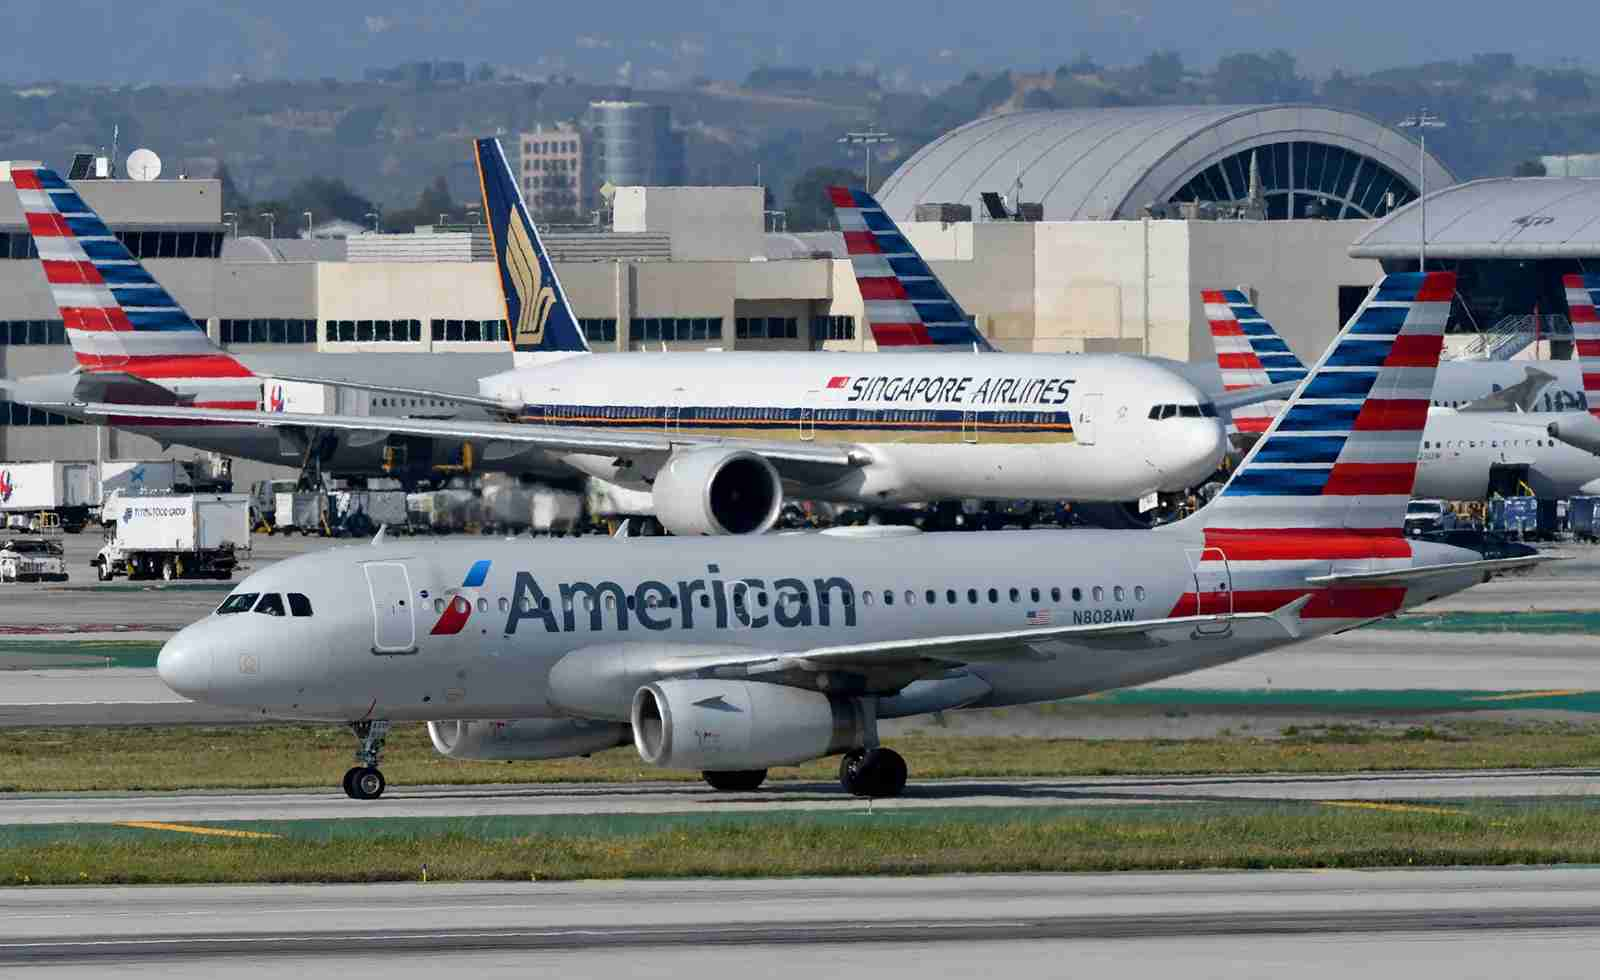 An Airbus A319 of American Airlines and a Boeing 777 of Singapore Airlines at LAX Airport, March 2019 (Photo by Alberto Riva/TPG)